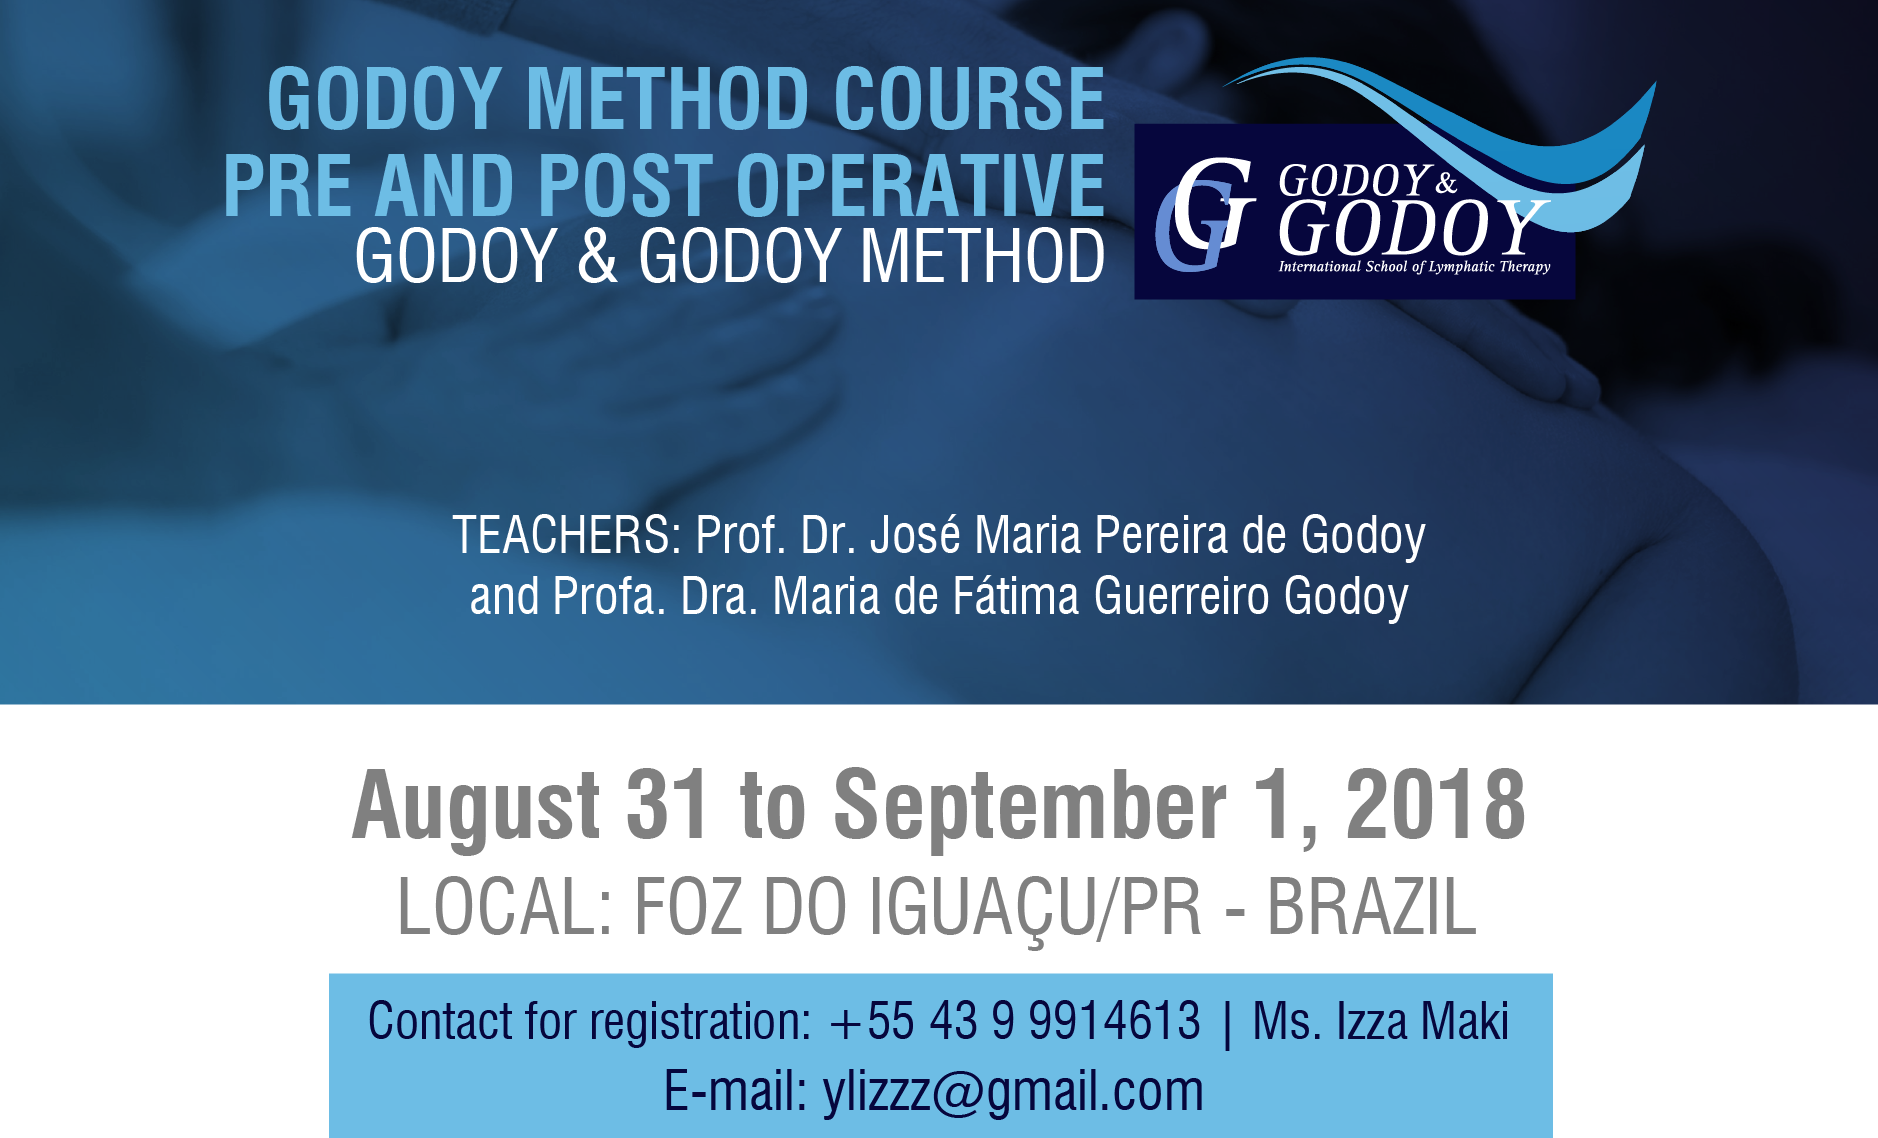 Method Course pre and post operative